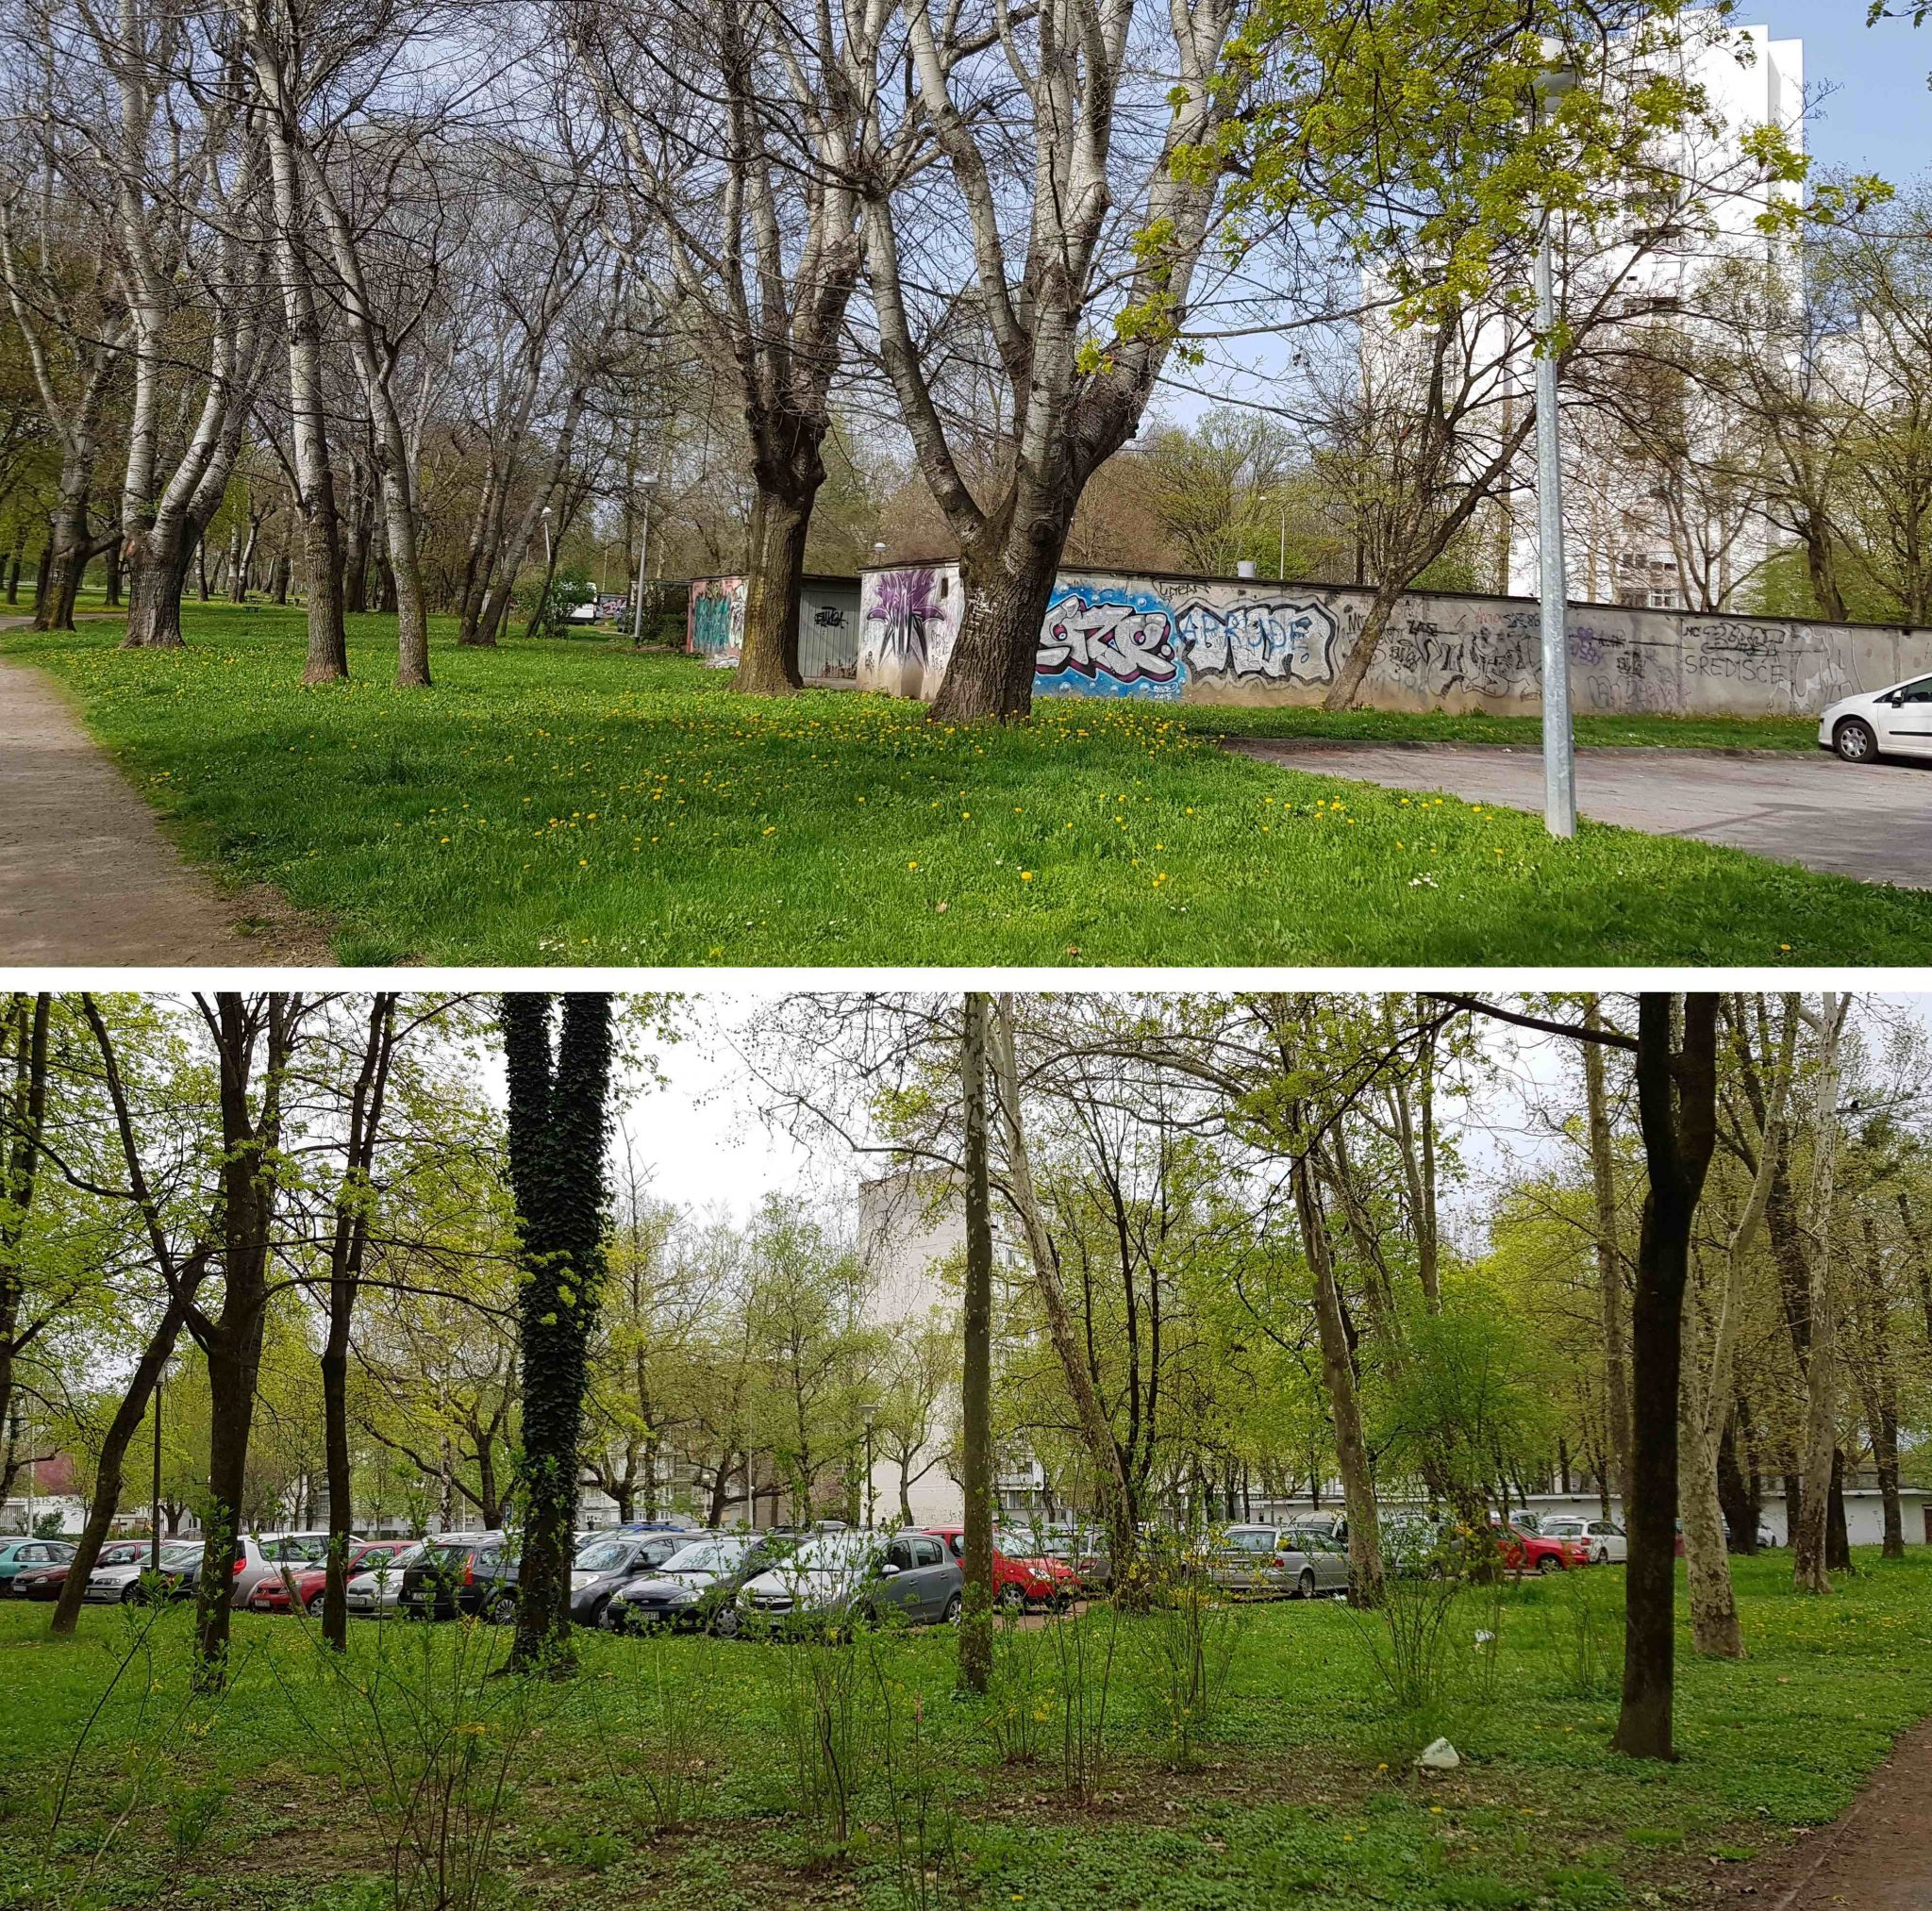 The Nature Of Cities An Idea Hive Green City Building Edible Plant Cell Project On Diagram 3d Poster Examples Garages And Parking Lots Intrusion In Vjekoslav Majer Park Above Newlyweds Below Photos Taken 11 04 2018